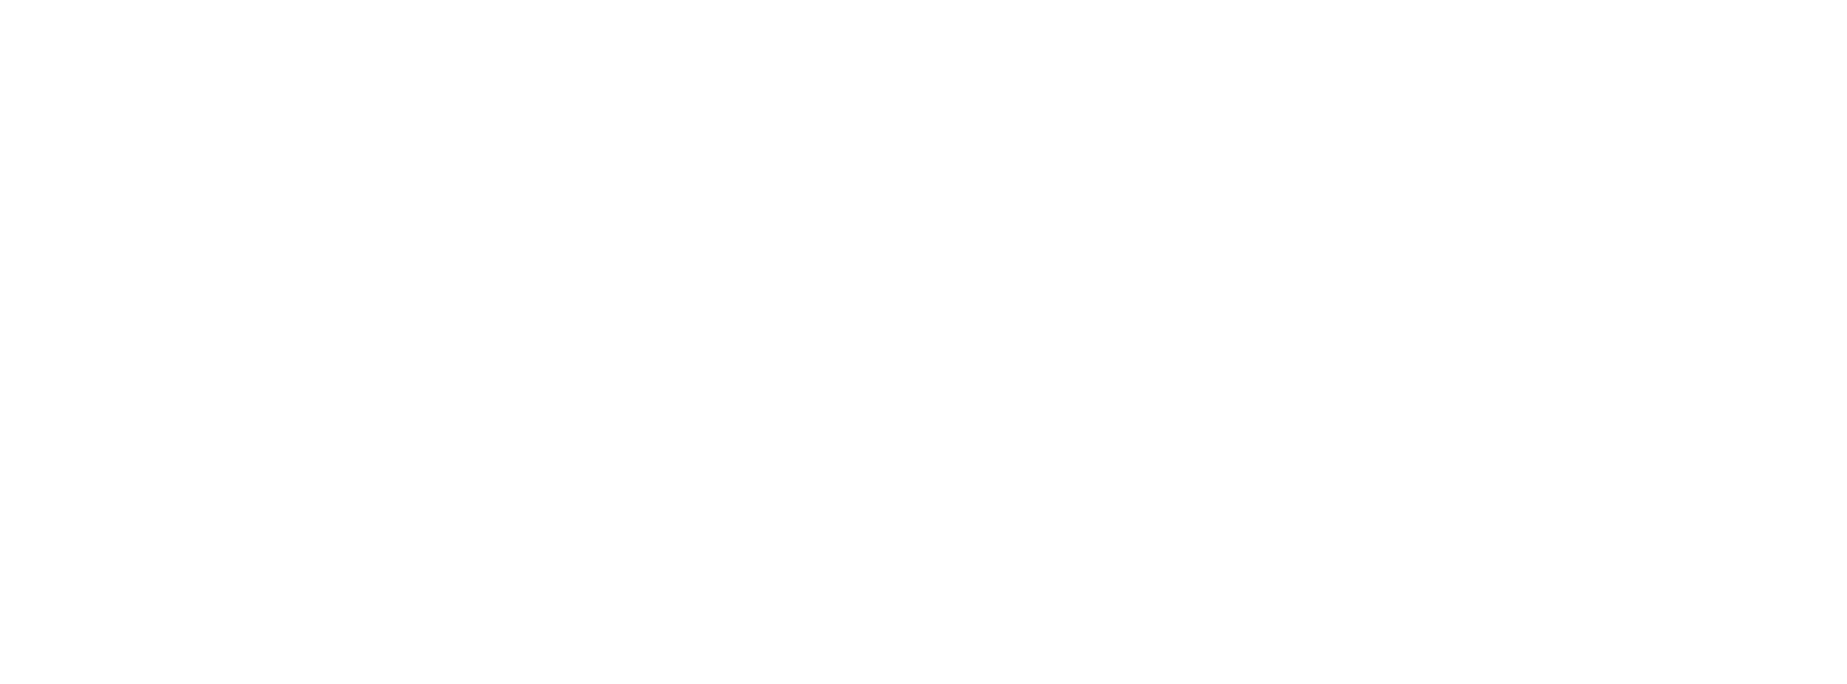 CULTIVATE CREATIVE CONFIDENCE